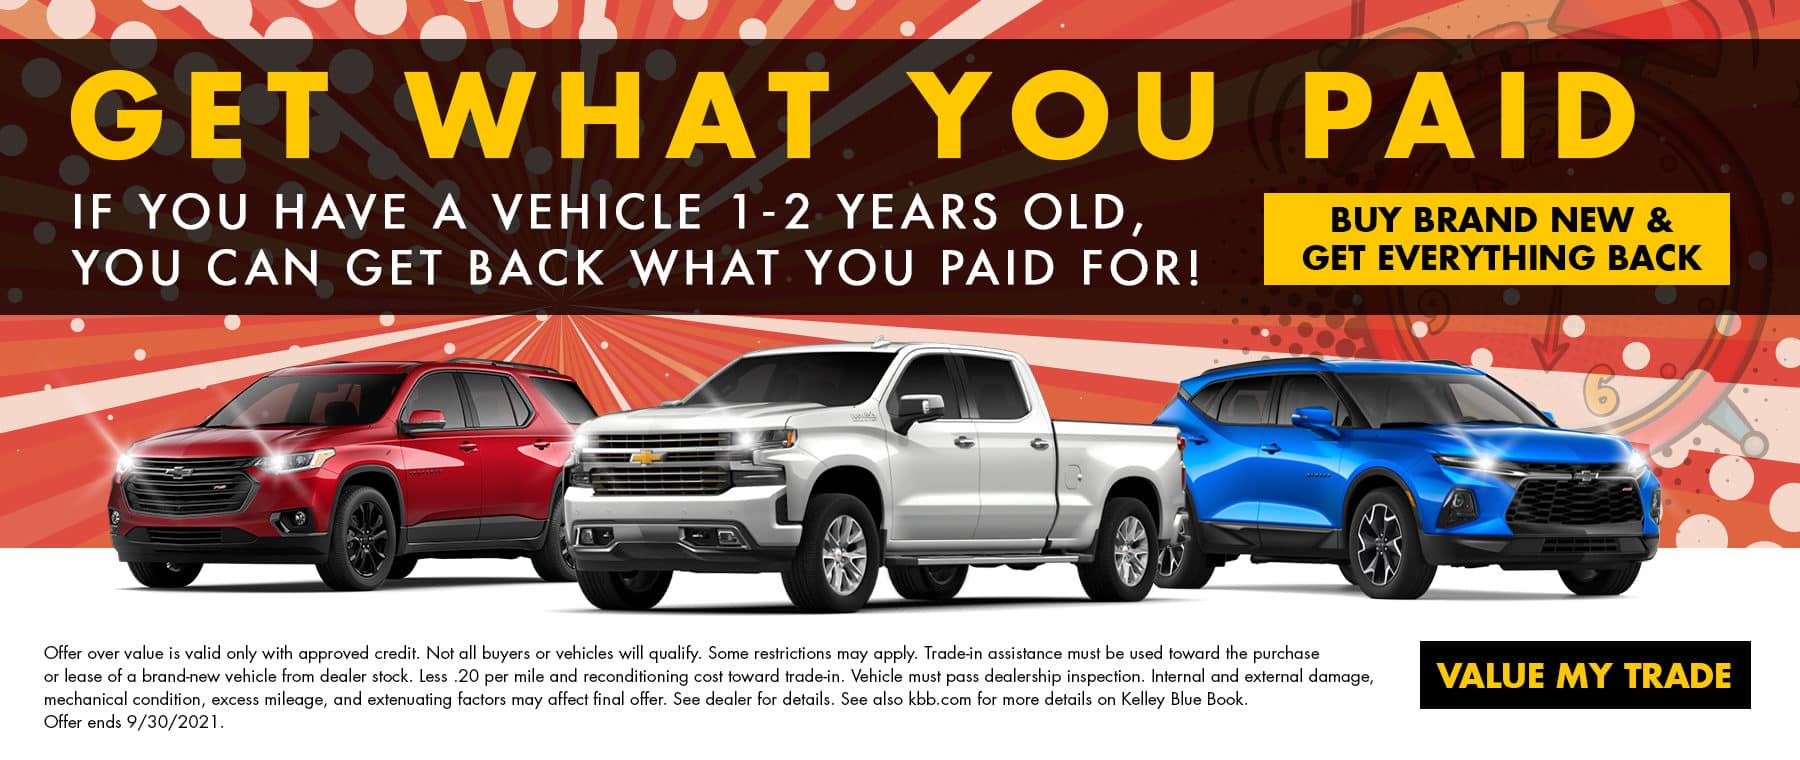 Get What You Paid   If You Have A Vehicle 1-2 Years Old, You Can Get Back What You Paid For!   Buy Brand New & Get Everything Back